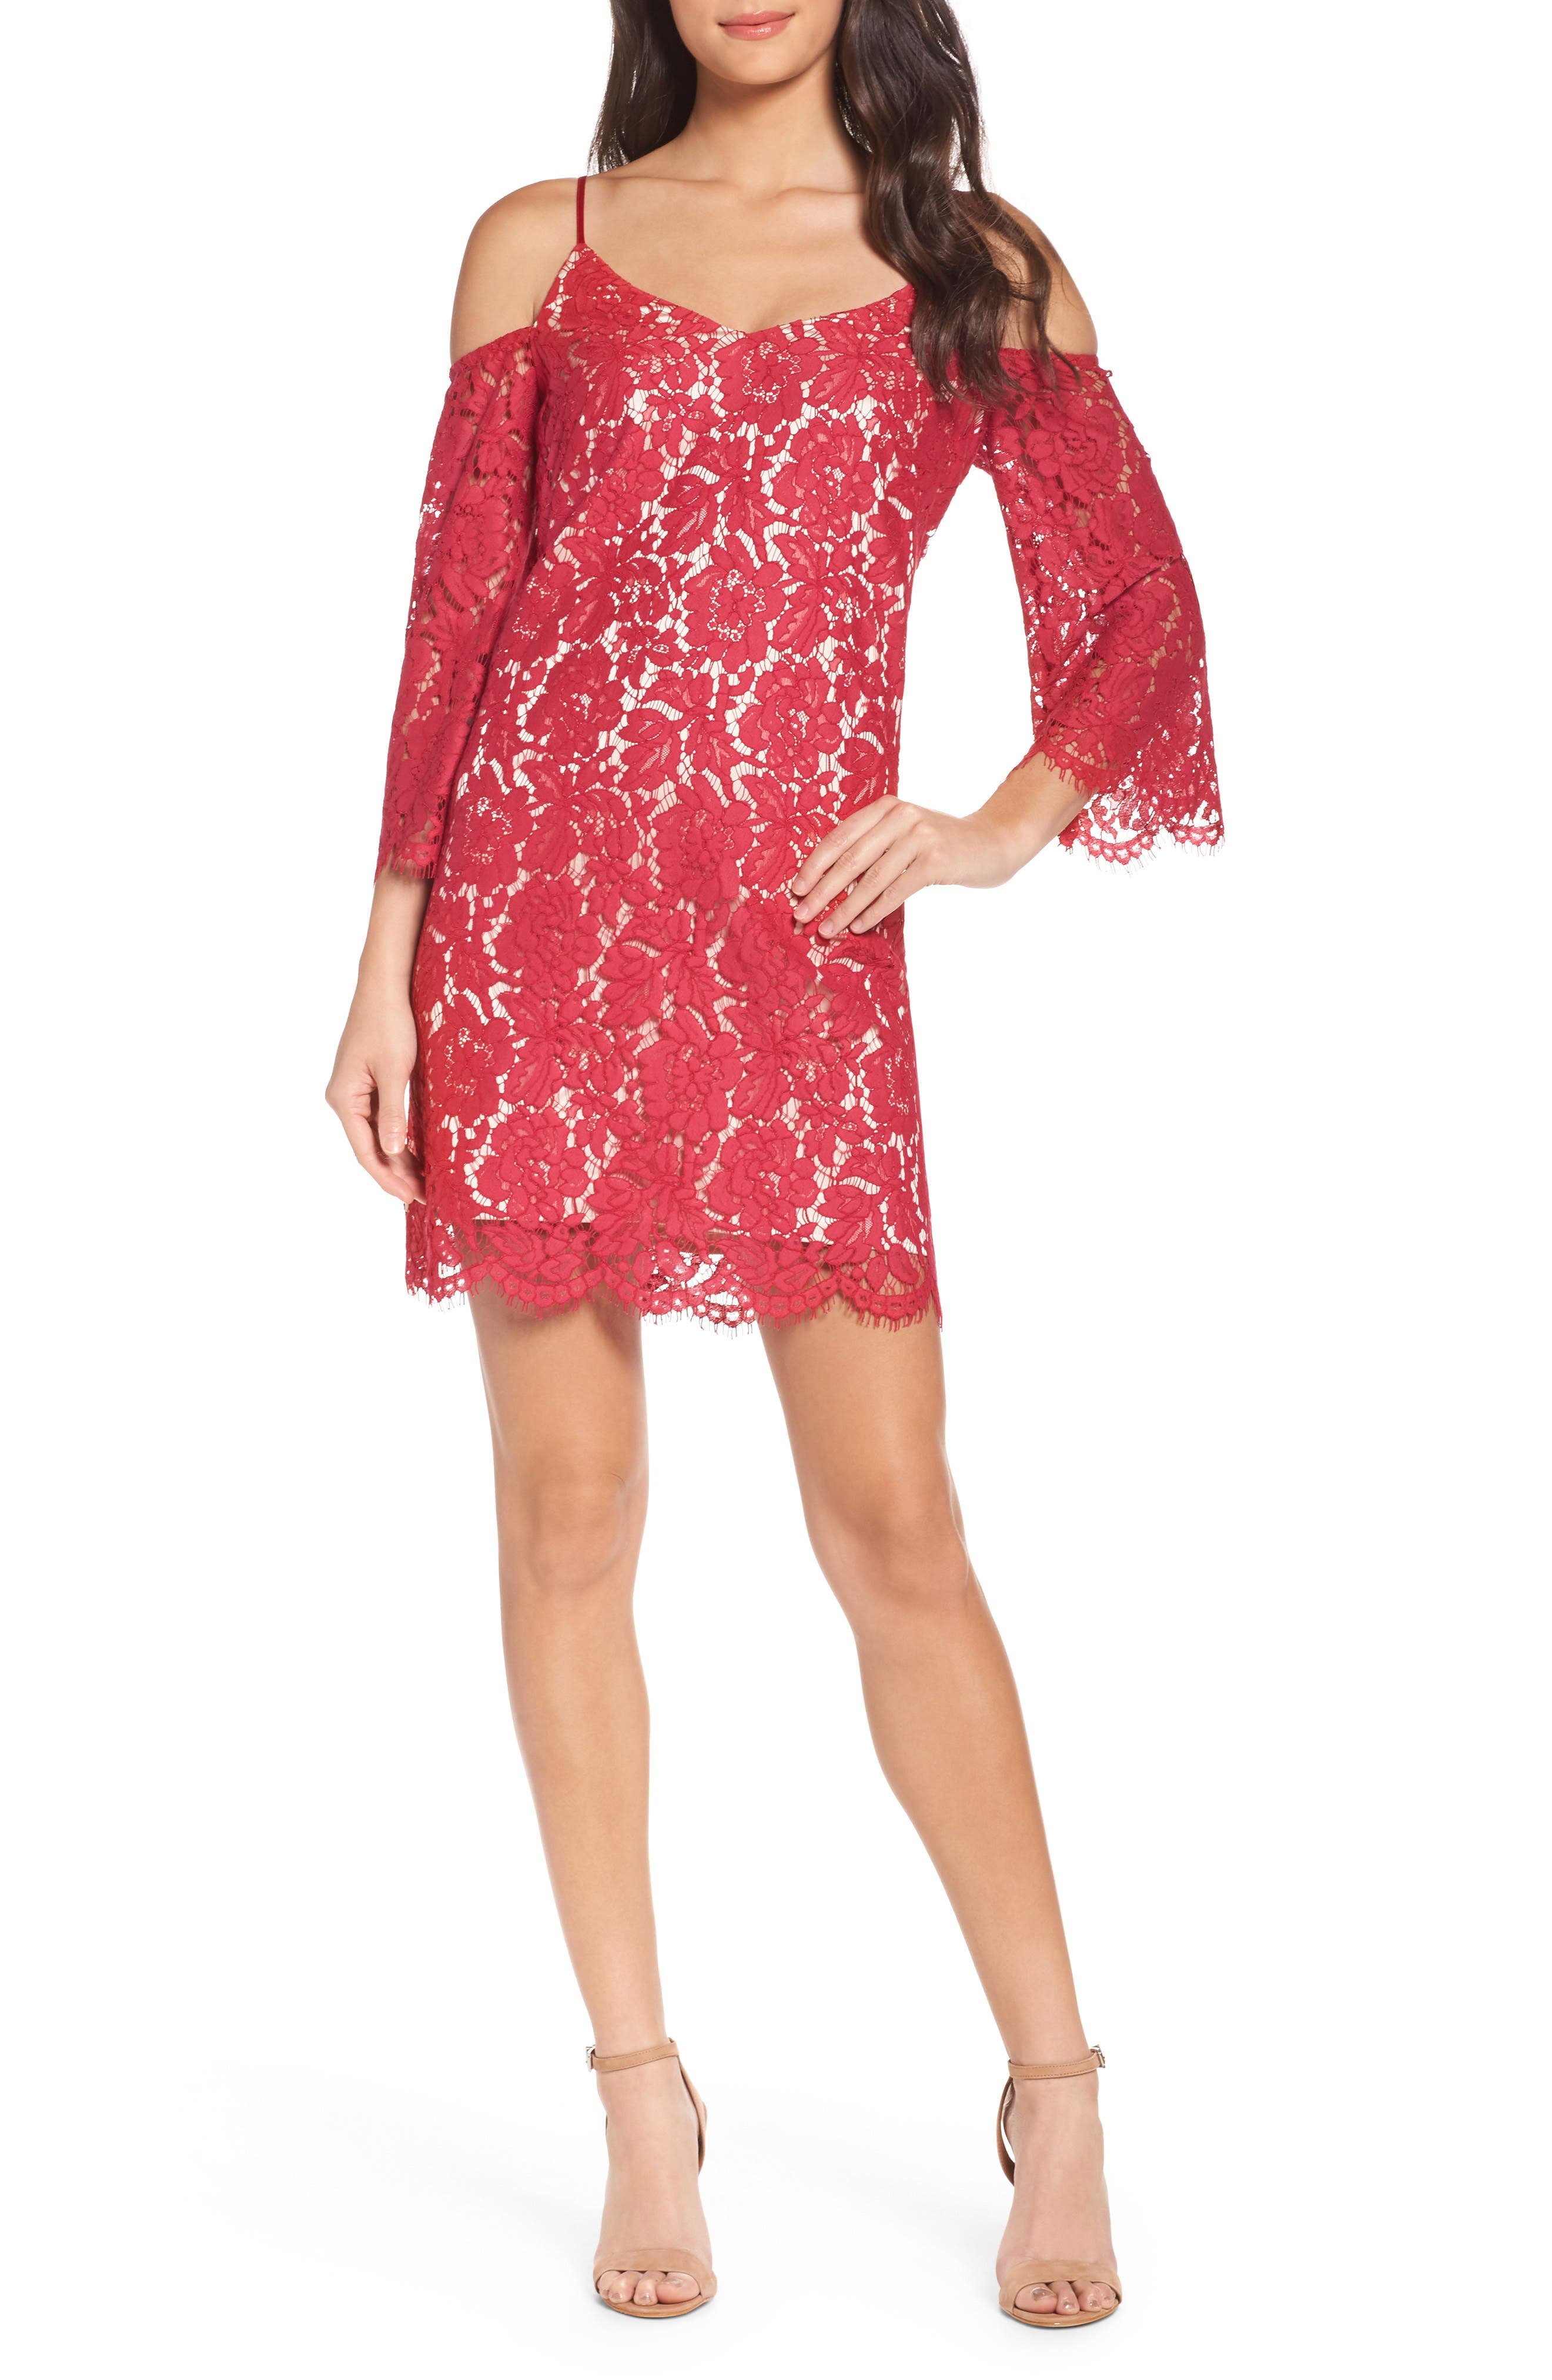 Alternate Image 1 Selected - Chelsea28 Cold Shoulder Lace Shift Dress